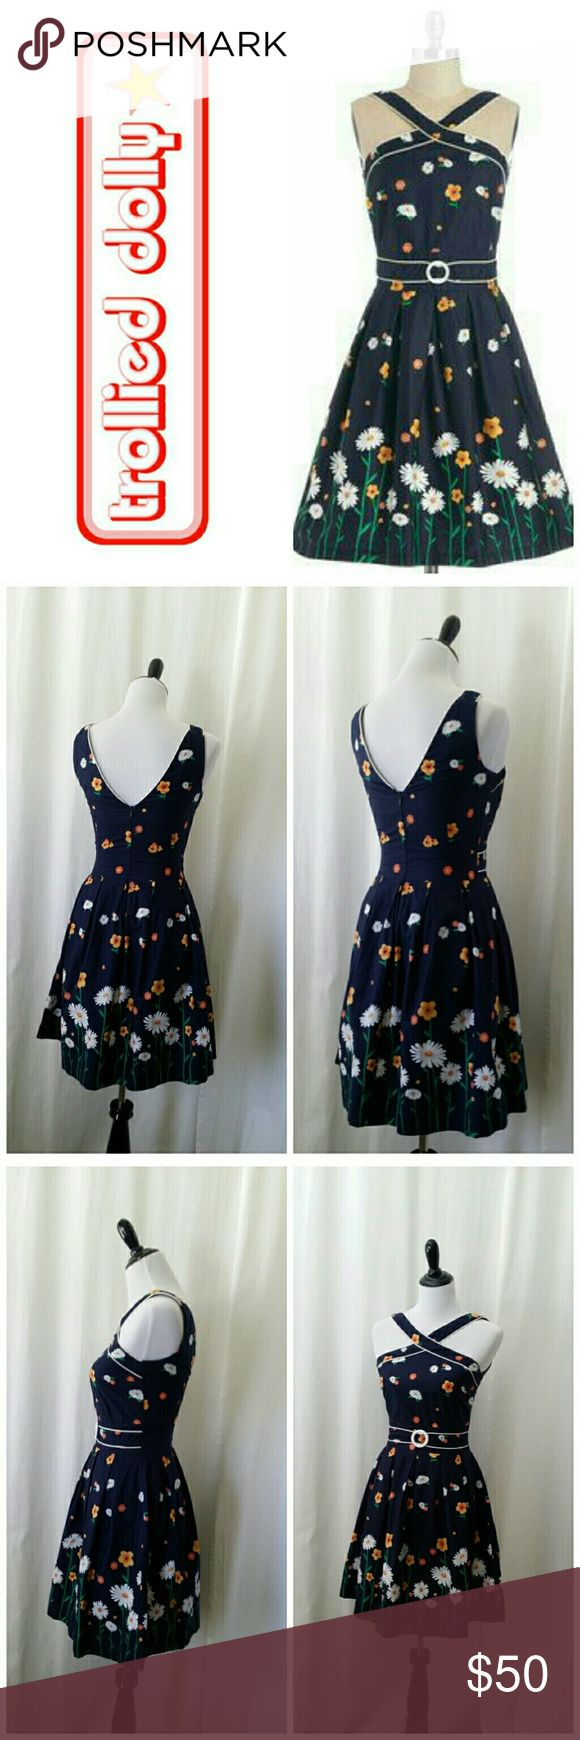 Trollied Dolly Cross My Heart Dress UK Dress Company Trollied Dolly Cross My Heart Dress-Navy Bordered Daisy-collectors item.  Sunshine on a hanger!  Cute and coy 50's inspired sun dress in a navy blue based print with contrast white piping and cascading daisies.   Time to twist n shout, the sun is out!  100% Cotton In Excellent Used Condition Dresses